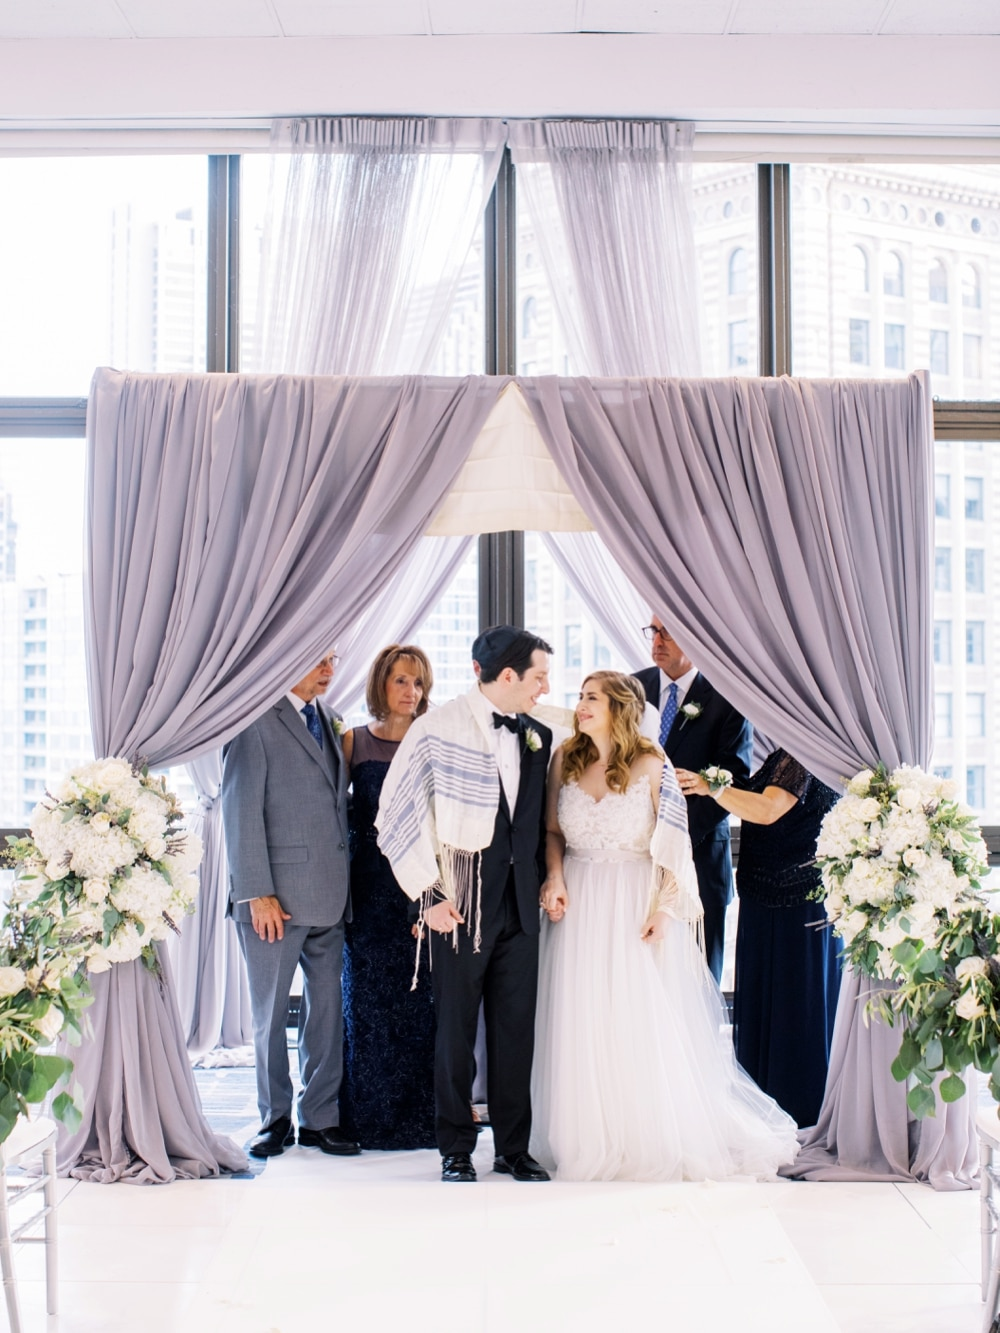 kristin-la-voie-photography-wyndham-grand-chicago-jewish-wedding-25